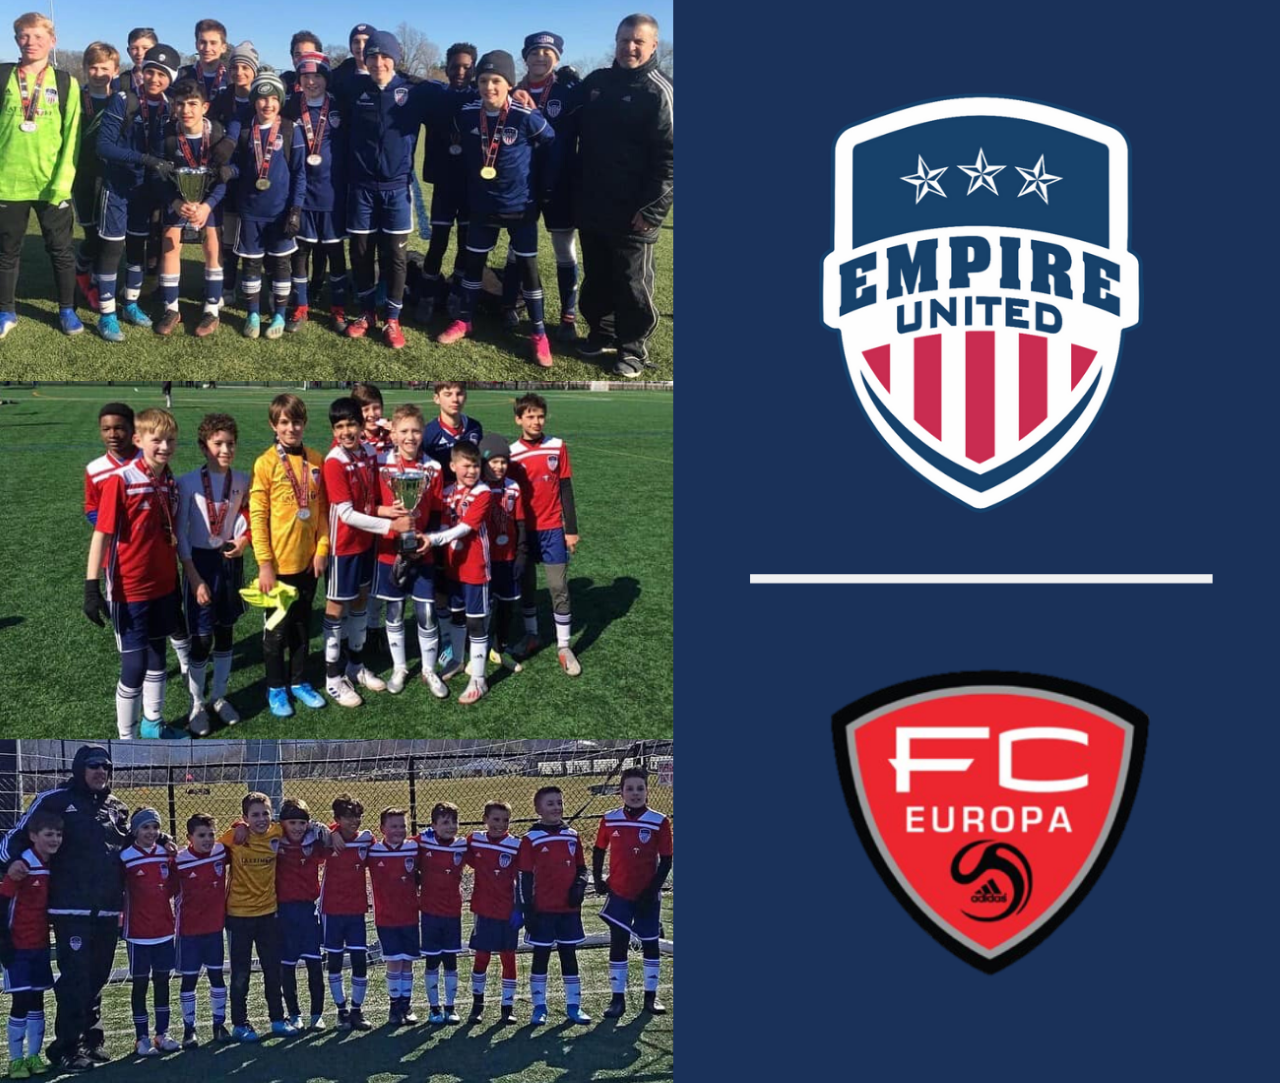 Empire United Rochester Wins Three Boys Groups at FC Europa Turf Cup